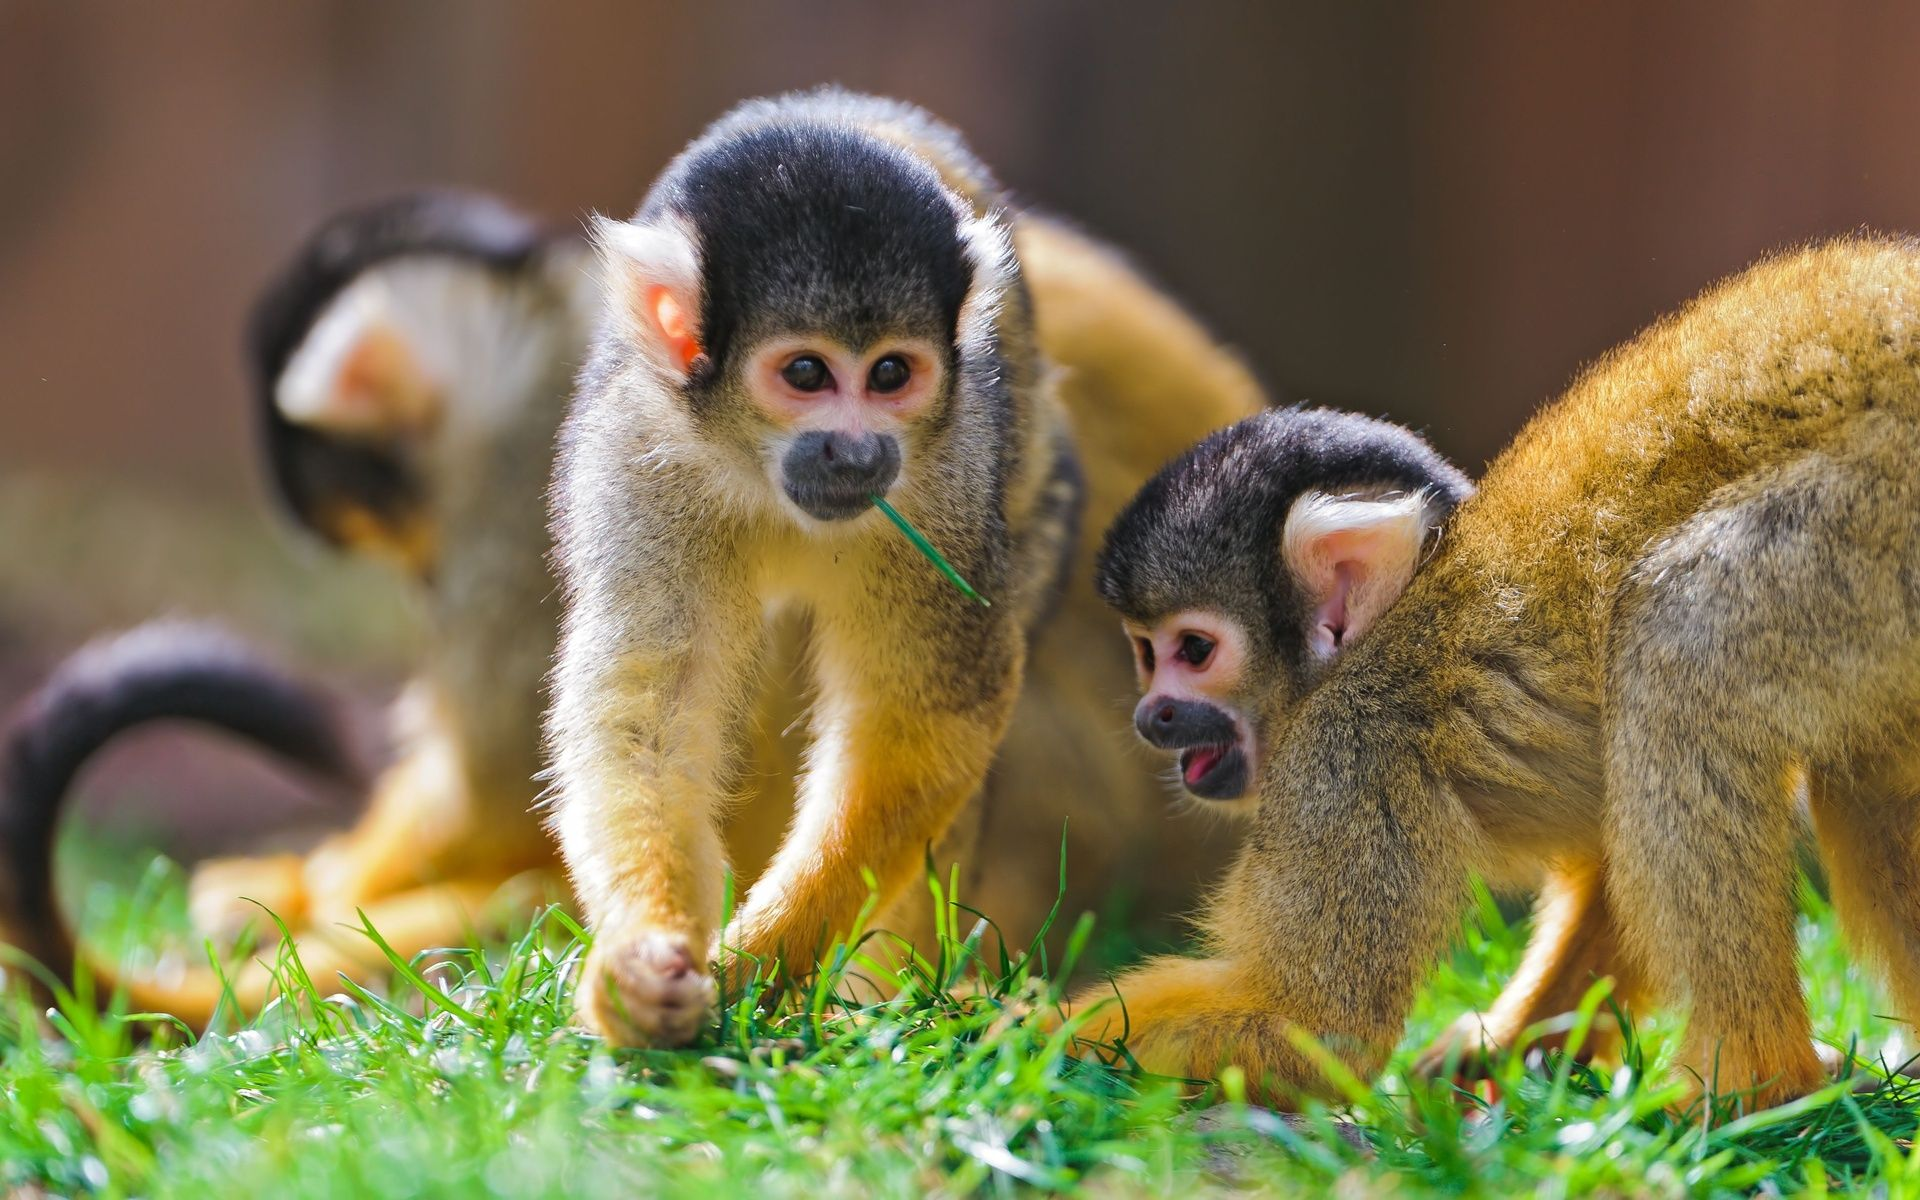 Monkey Wallpaper monkey hd backgrounds | hd wallpapers | pinterest | monkey